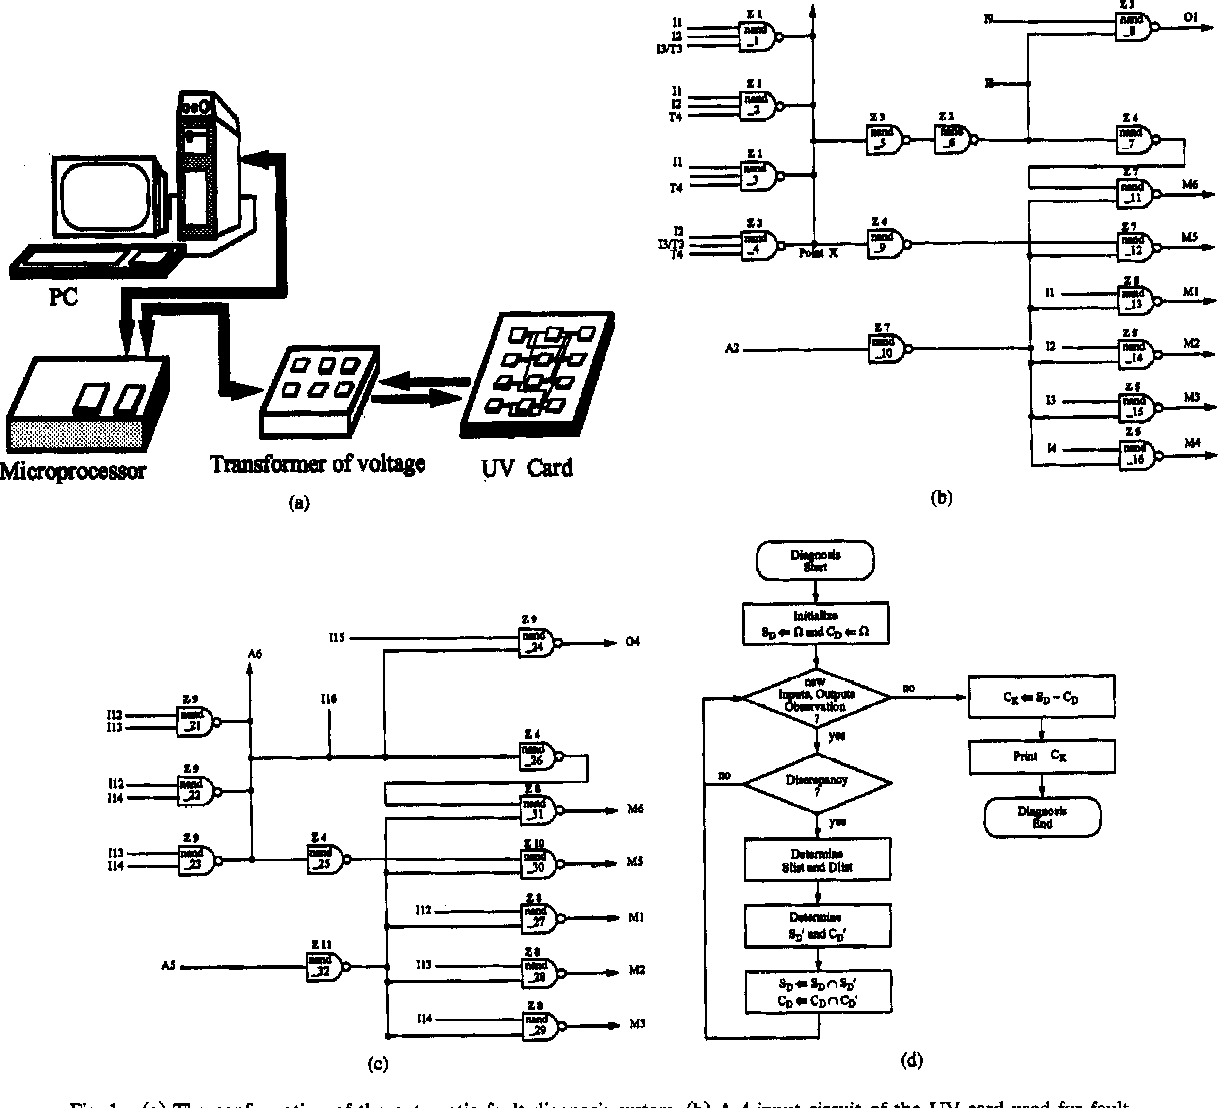 hight resolution of  a the configuration of the automatic fault diagnosis system